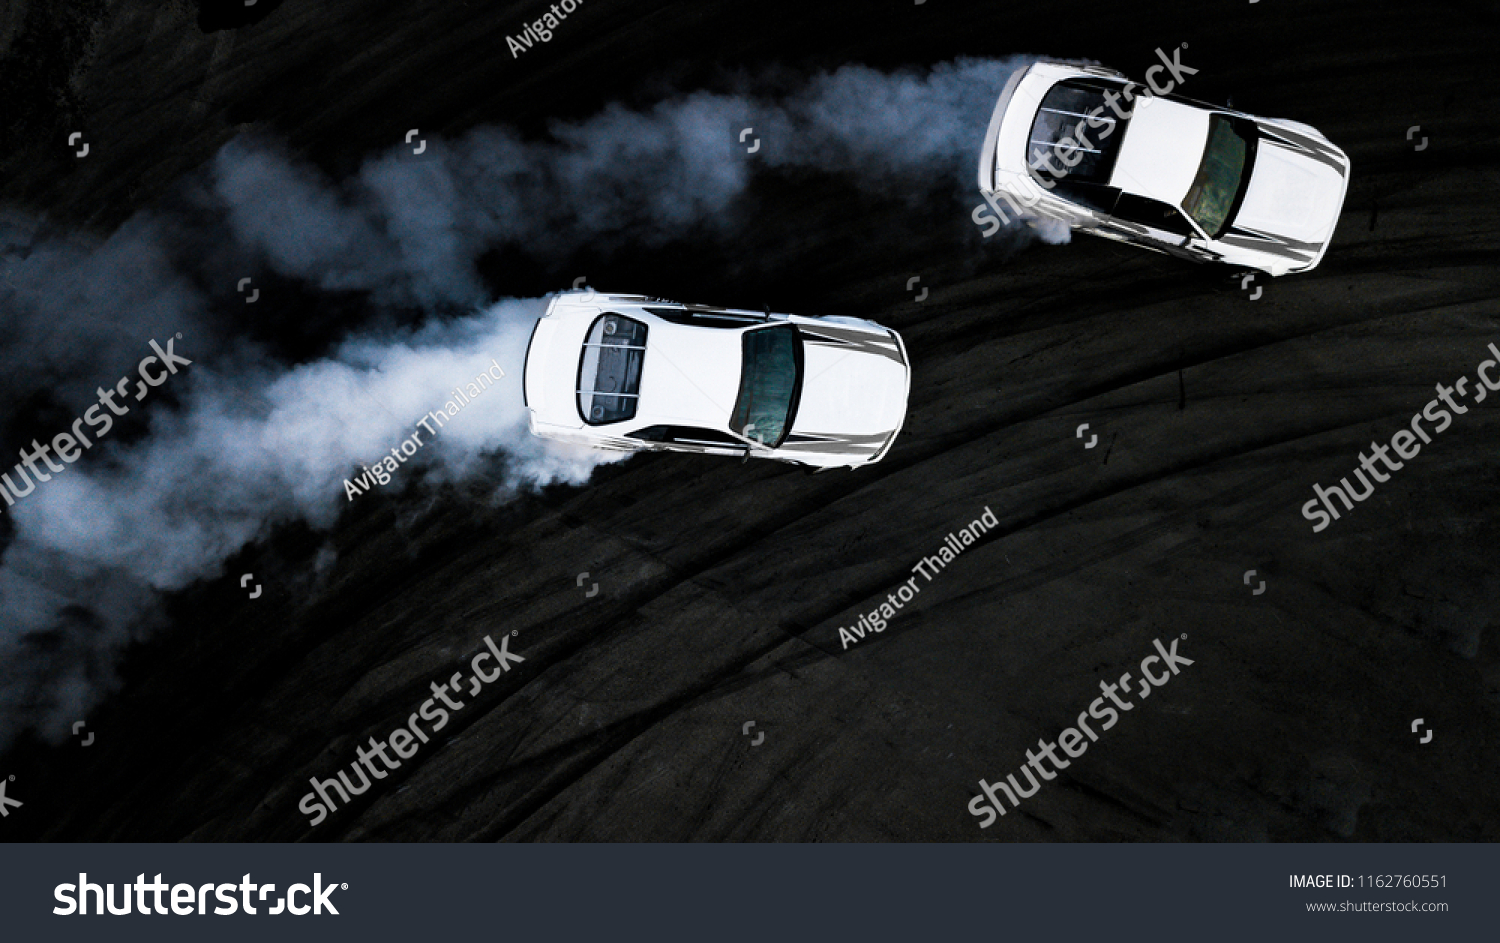 Two car drifting battle on asphalt street rad race track, Race car drift performance view from above, Car drifting, Automobile and automotive drift car with smoke from burning tire on speed track. #1162760551